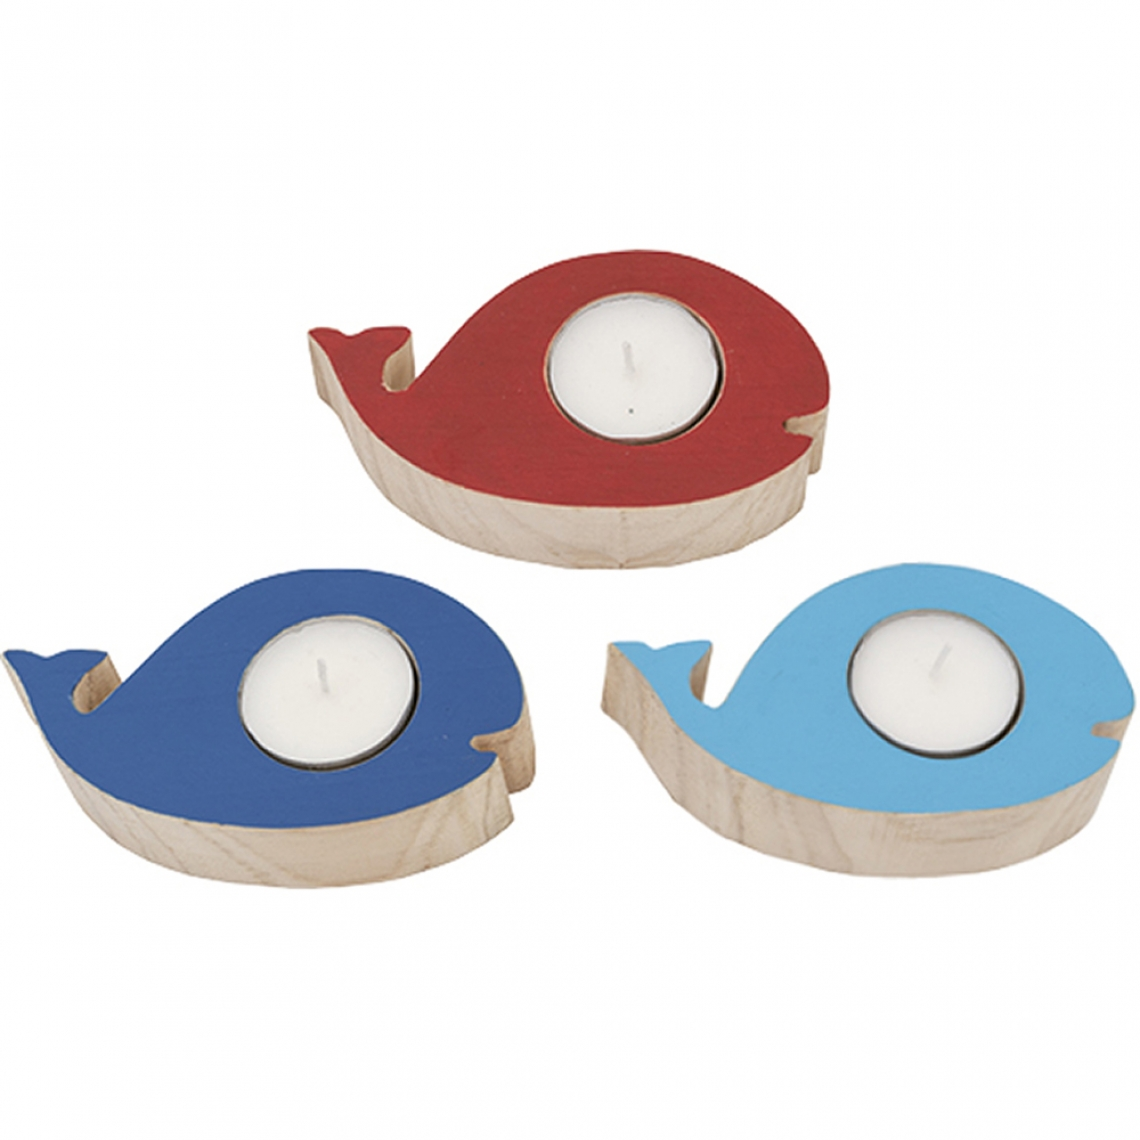 Set of 3 whale candle holders